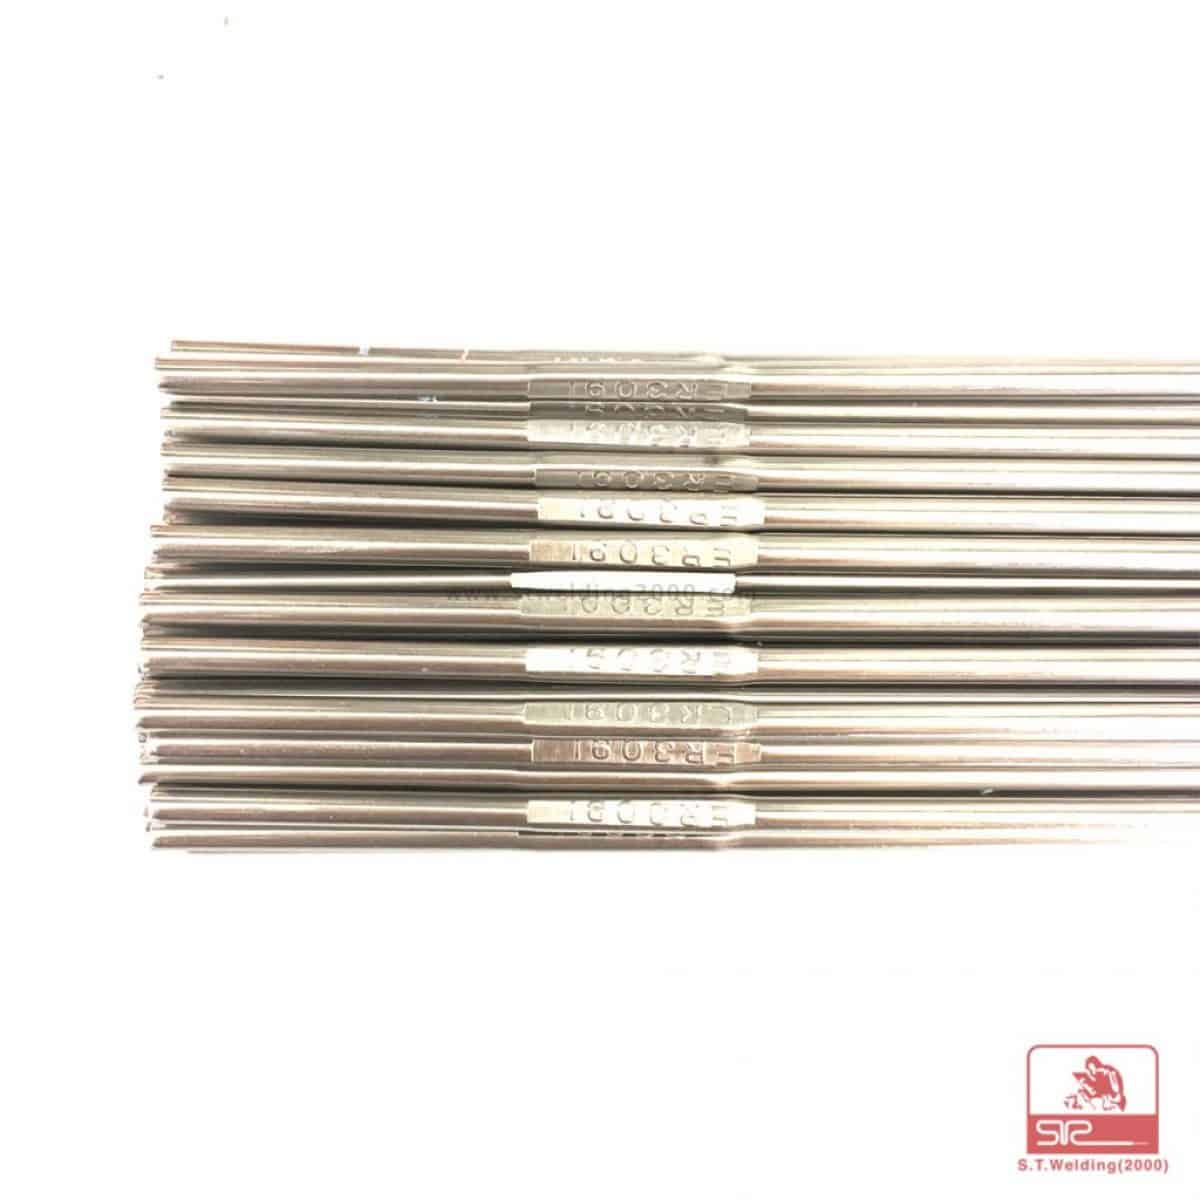 TIG stainless 309L